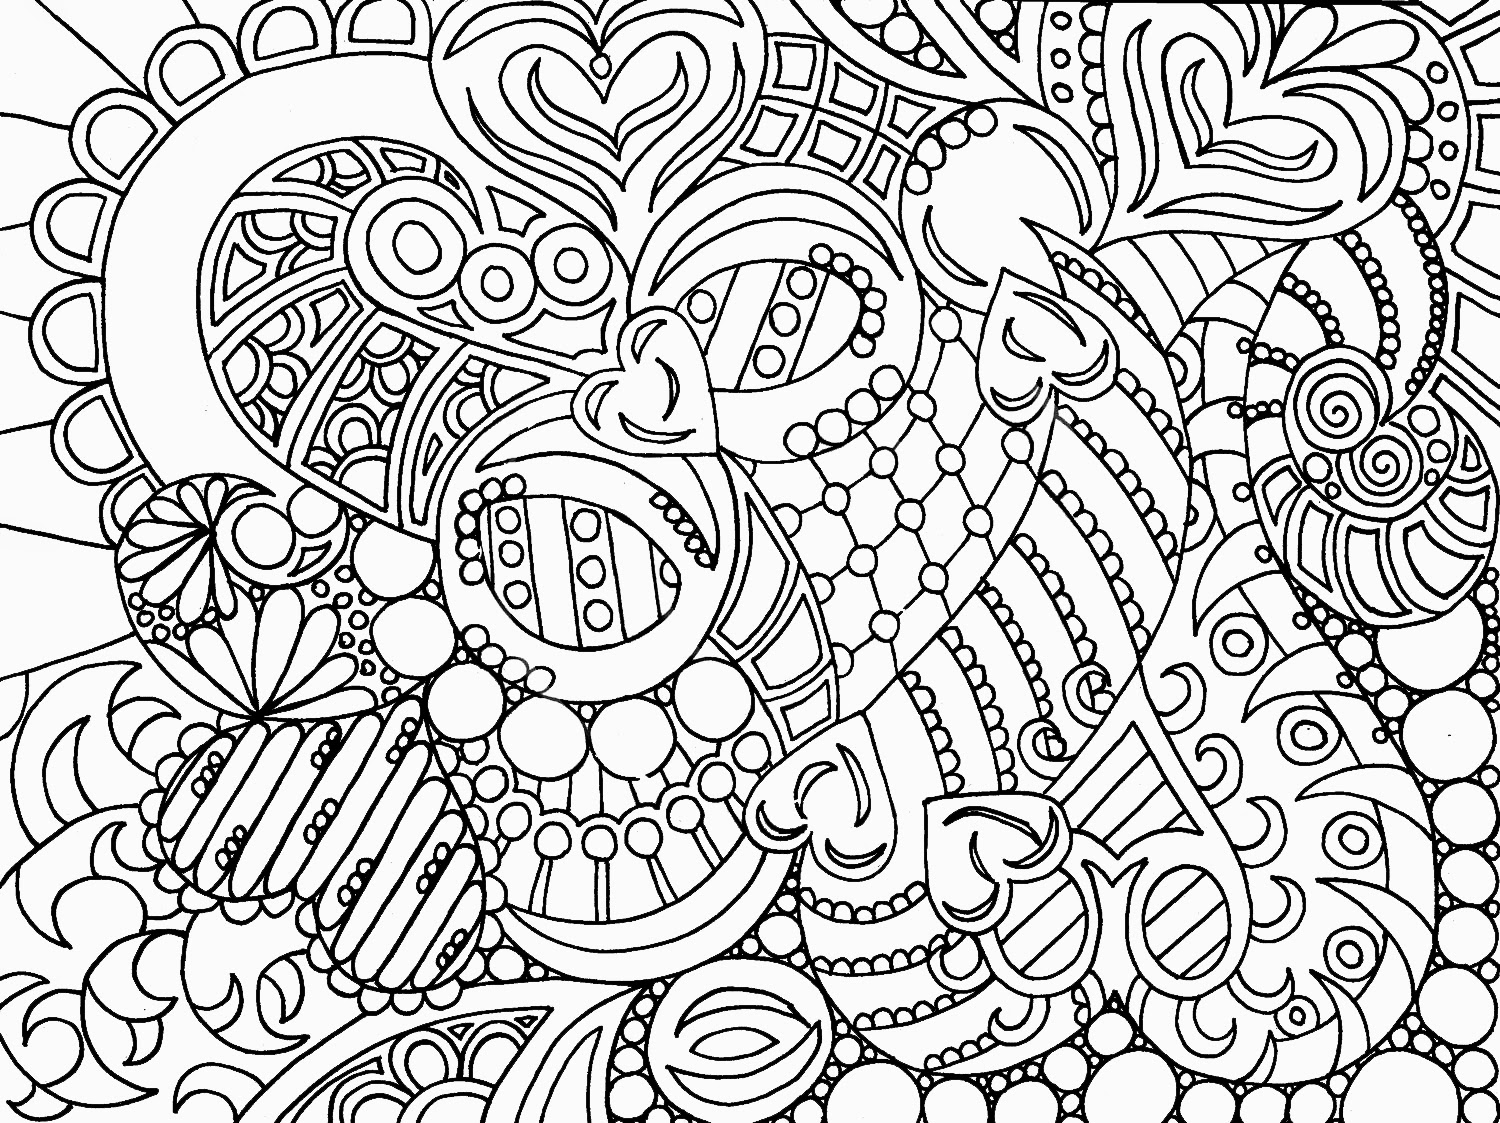 Abstract coloring pages coloring pages Coloring book